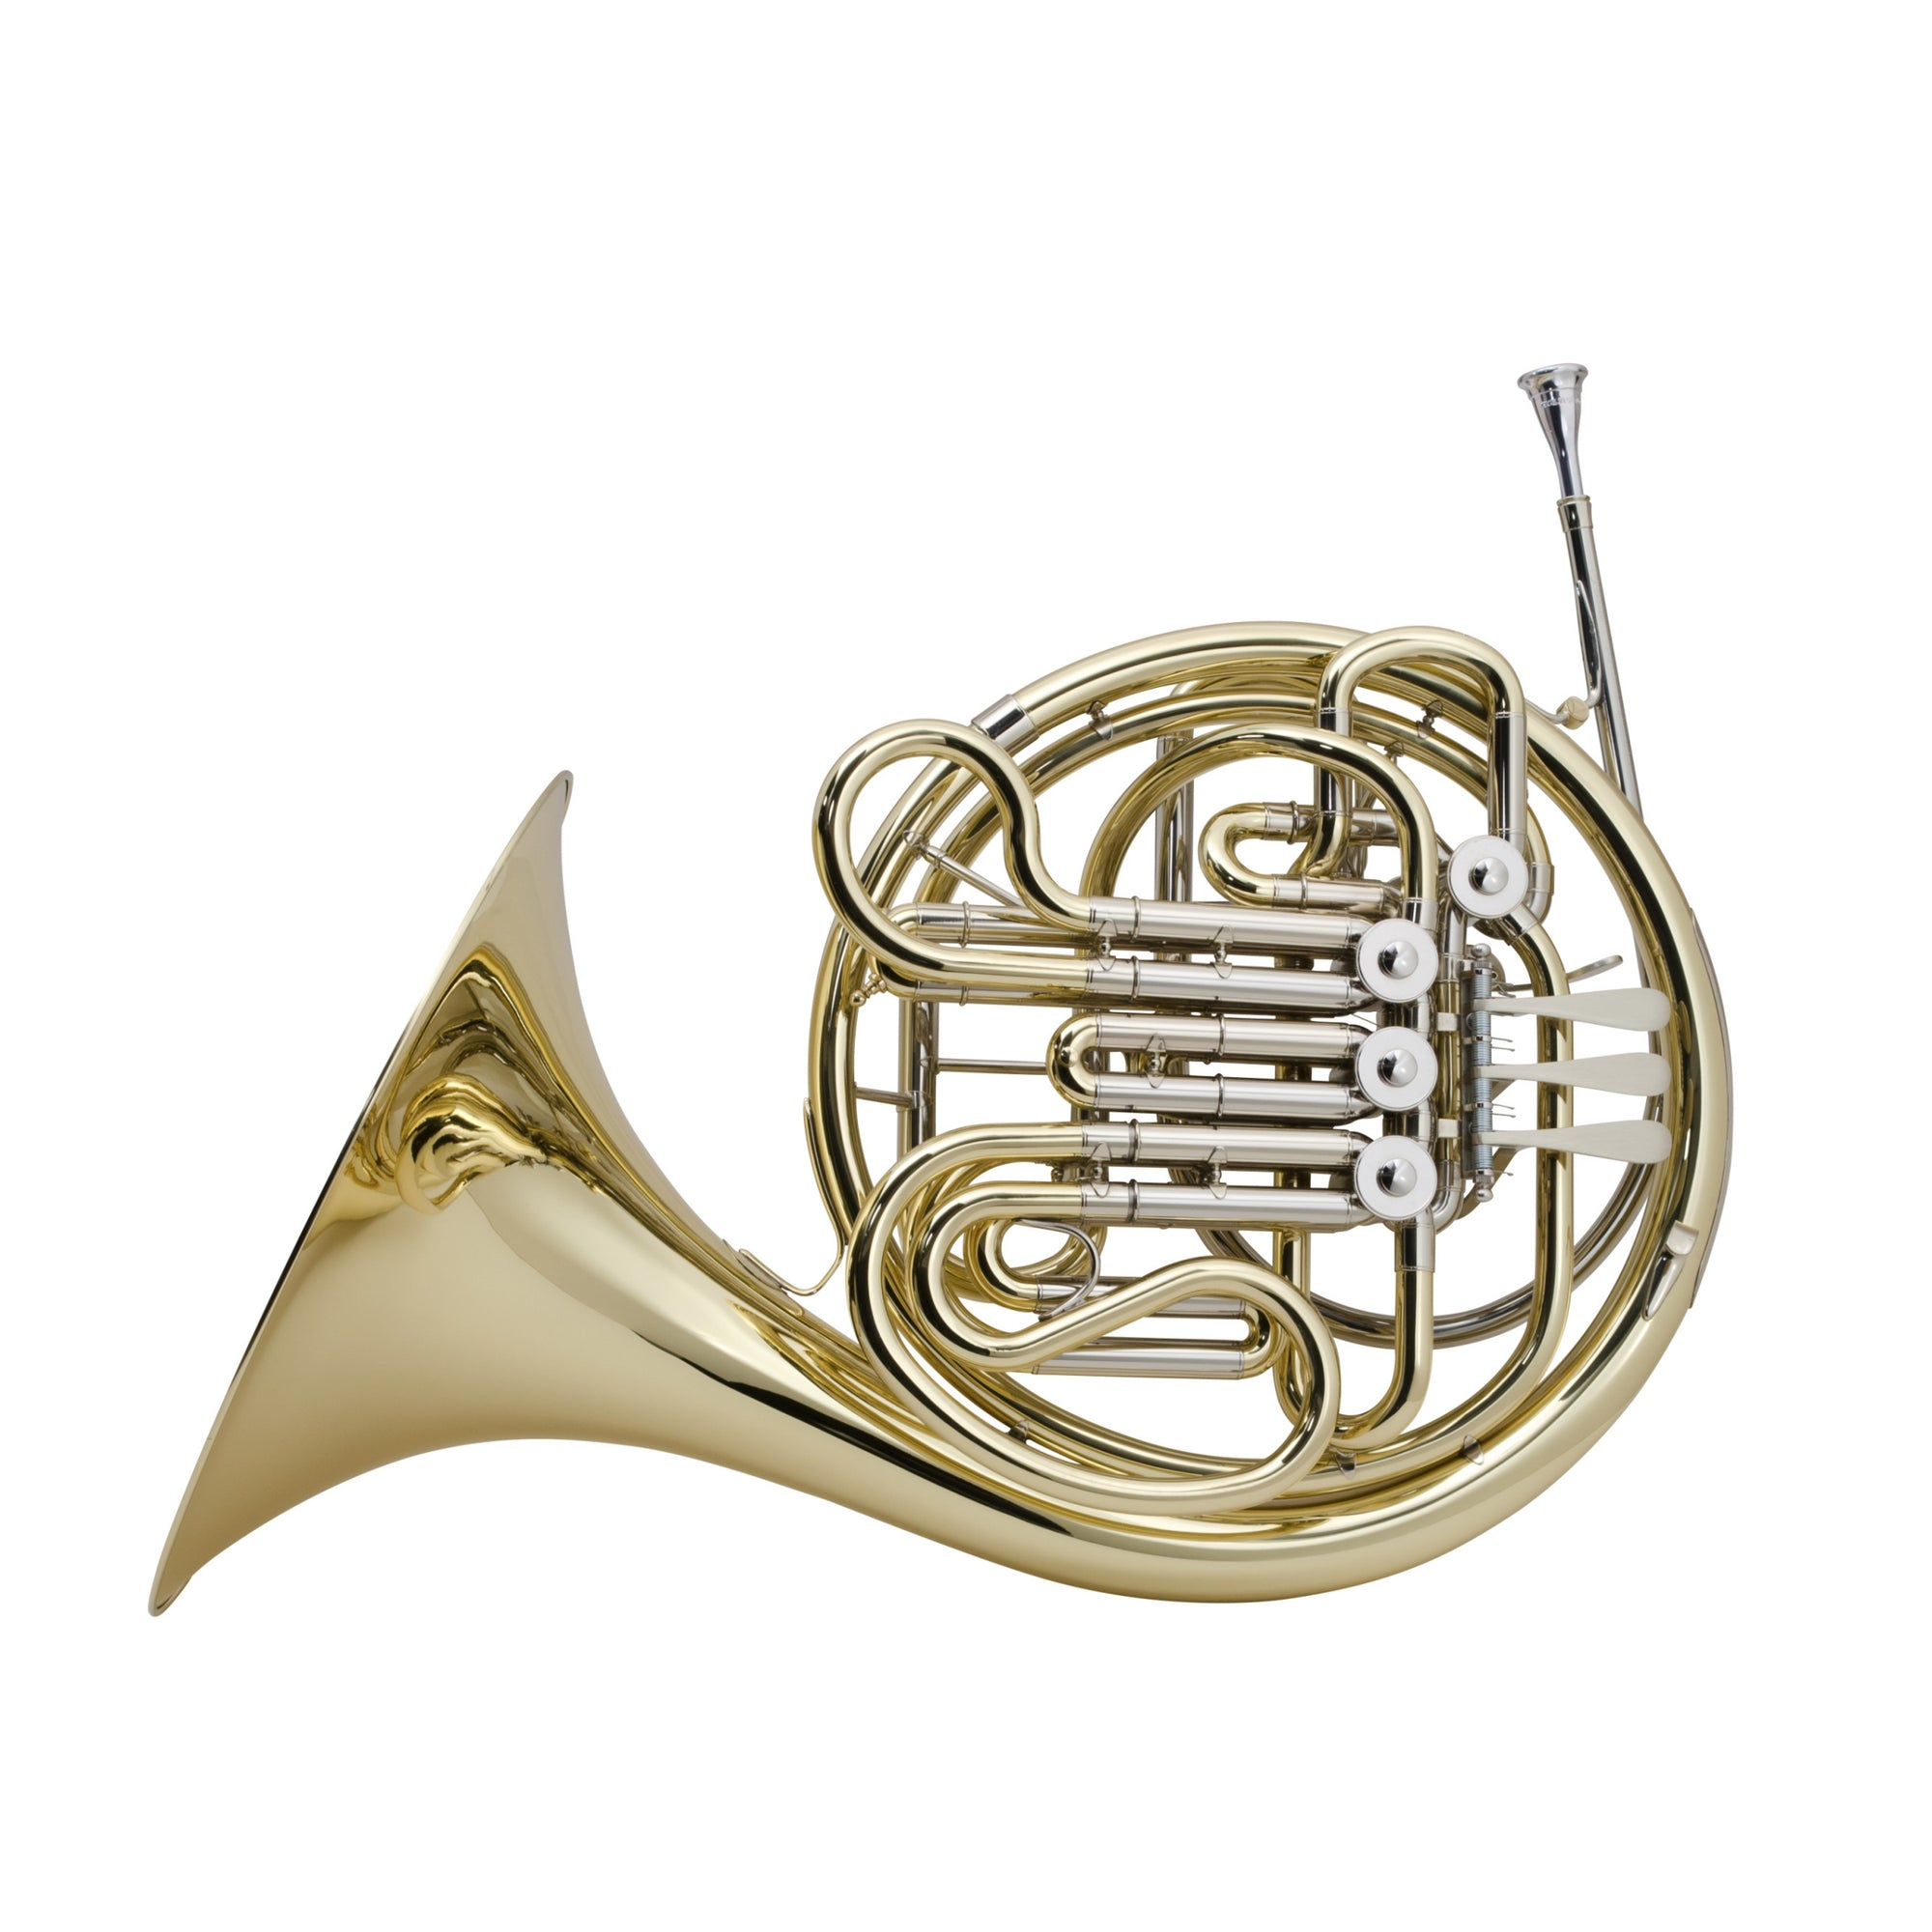 Holton H378 Intermediate Double French Horn